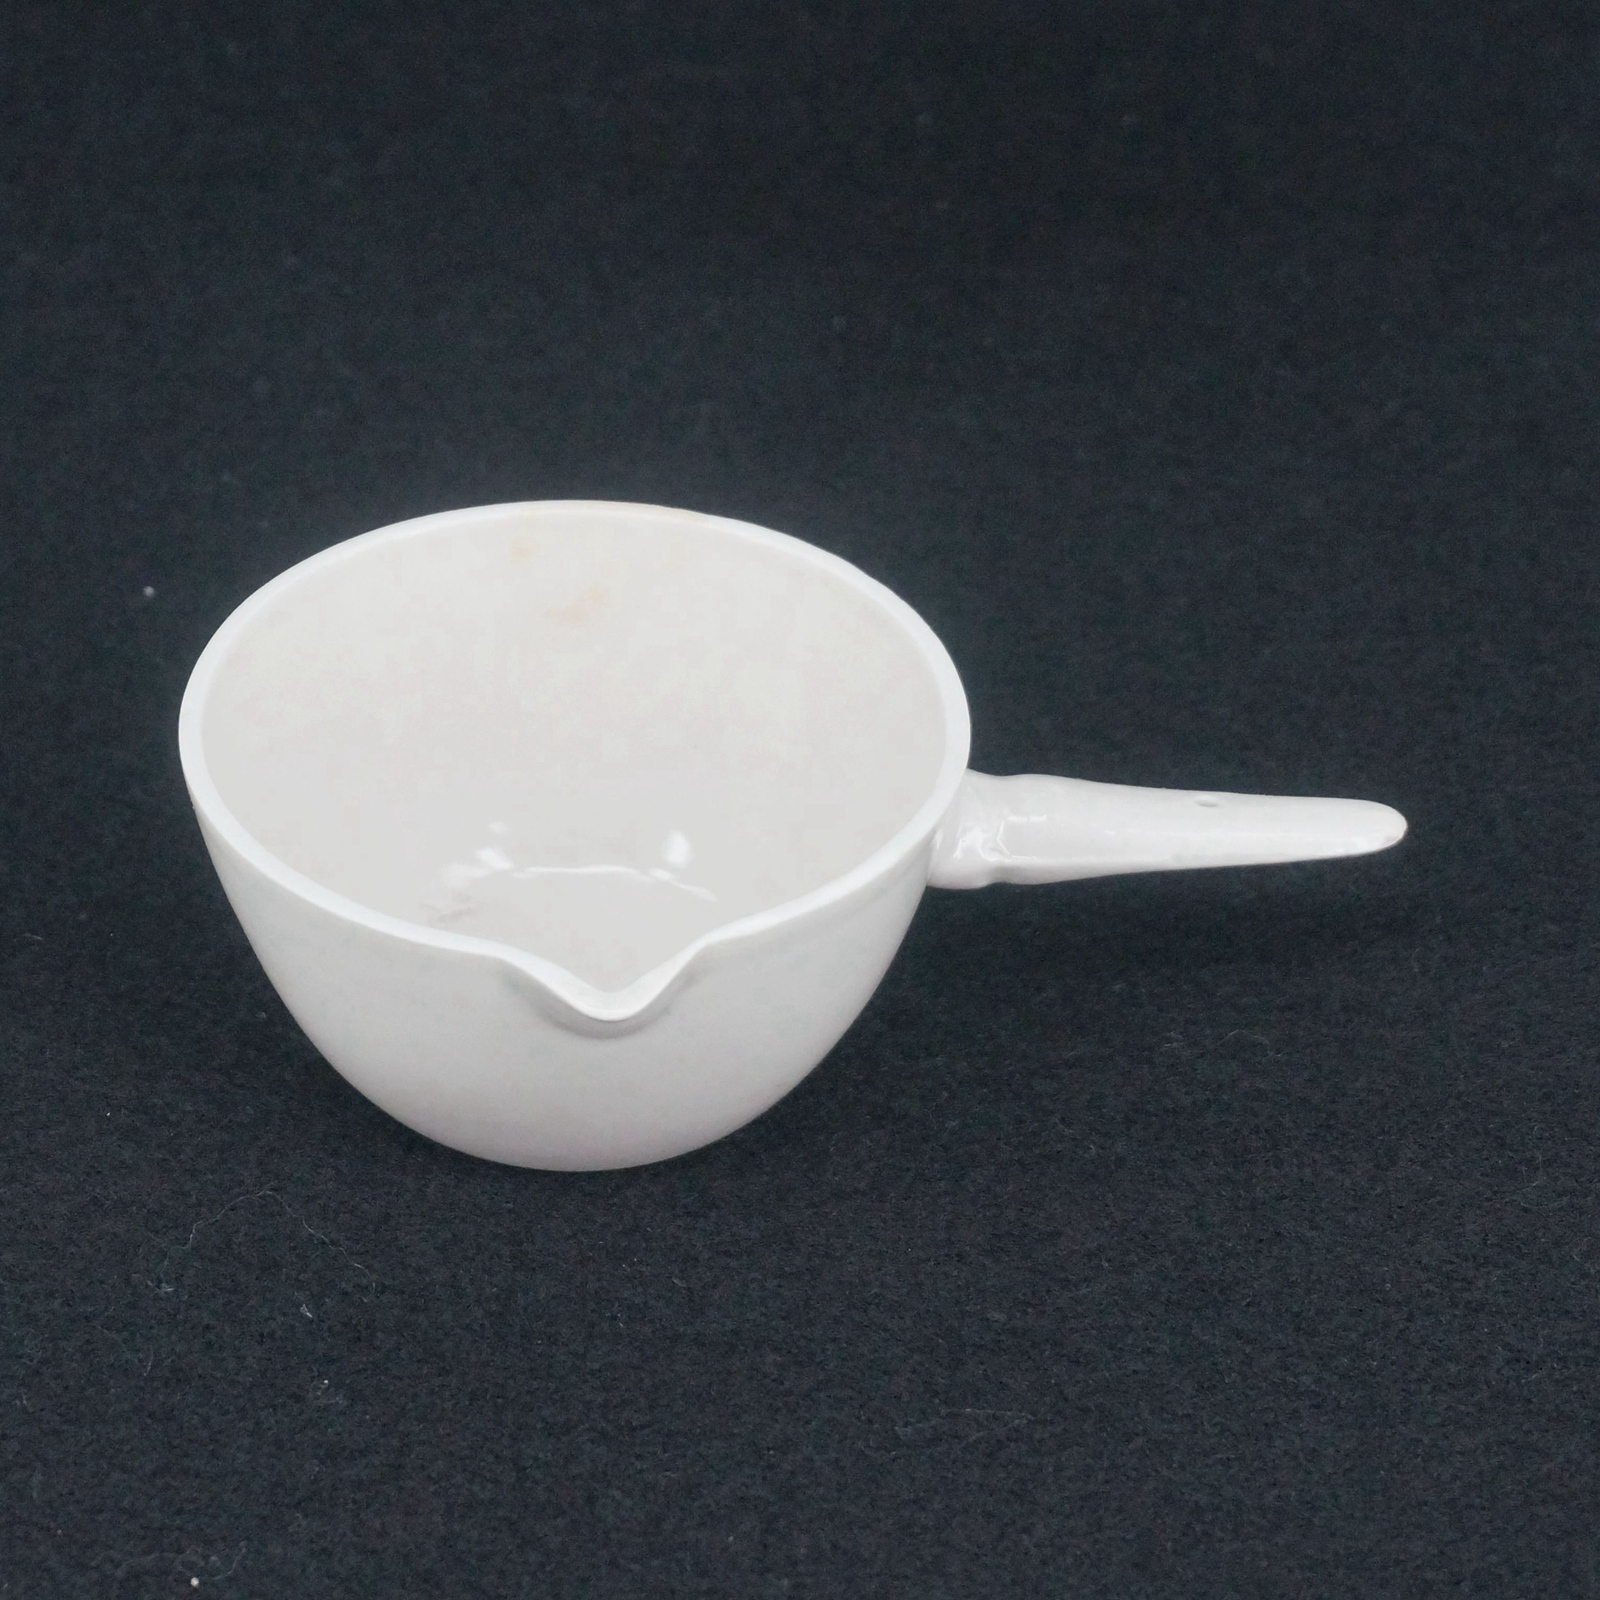 100ml Ceramic Evaporating dish Round bottom with handle For ... for Evaporating Dish Laboratory Apparatus  76uhy